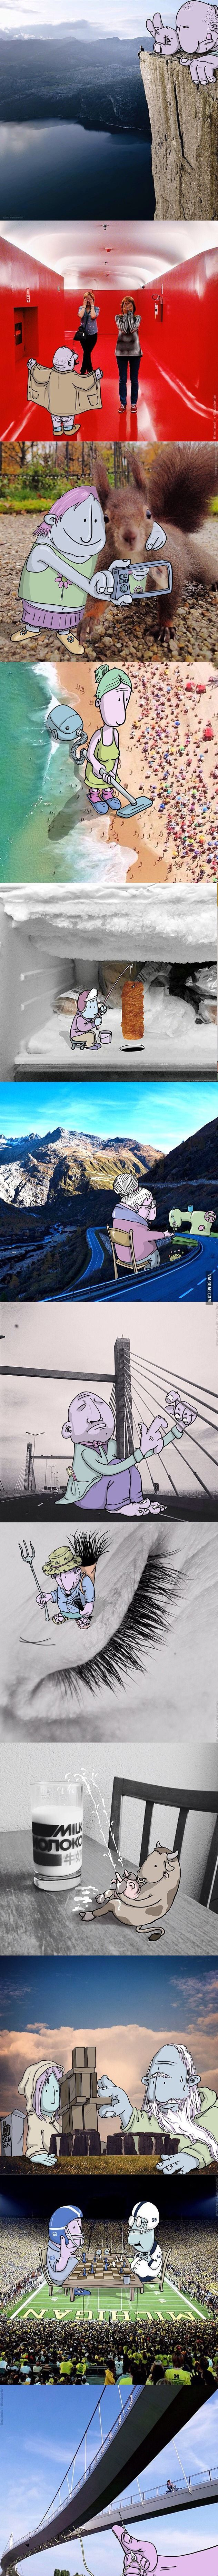 Illustrator adds cartoons to real life photos and they are awesome! (Part 2) - 9GAG